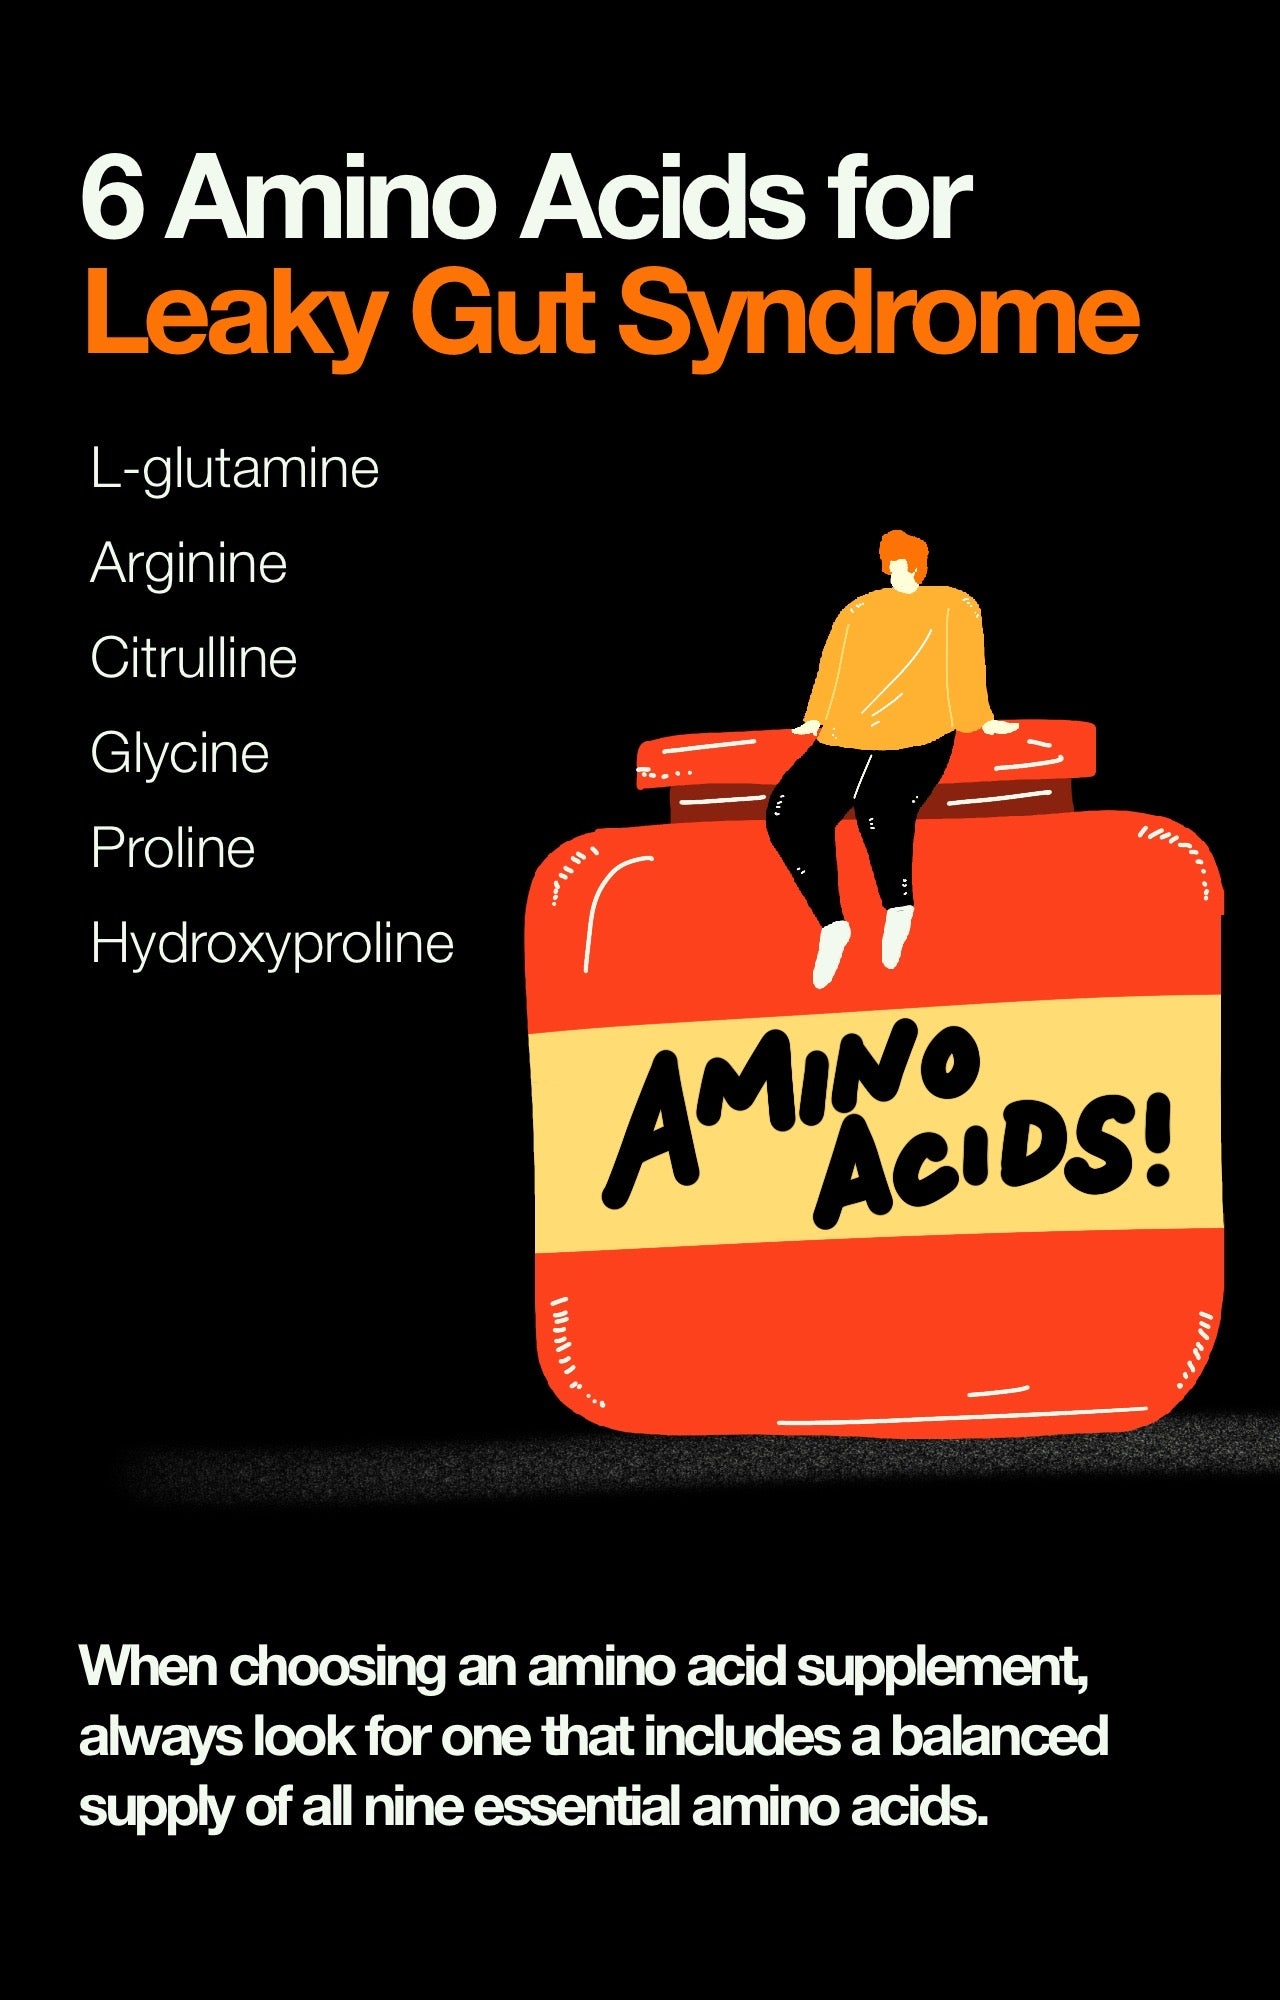 6 Amino Acids for Leaky Gut Syndrome